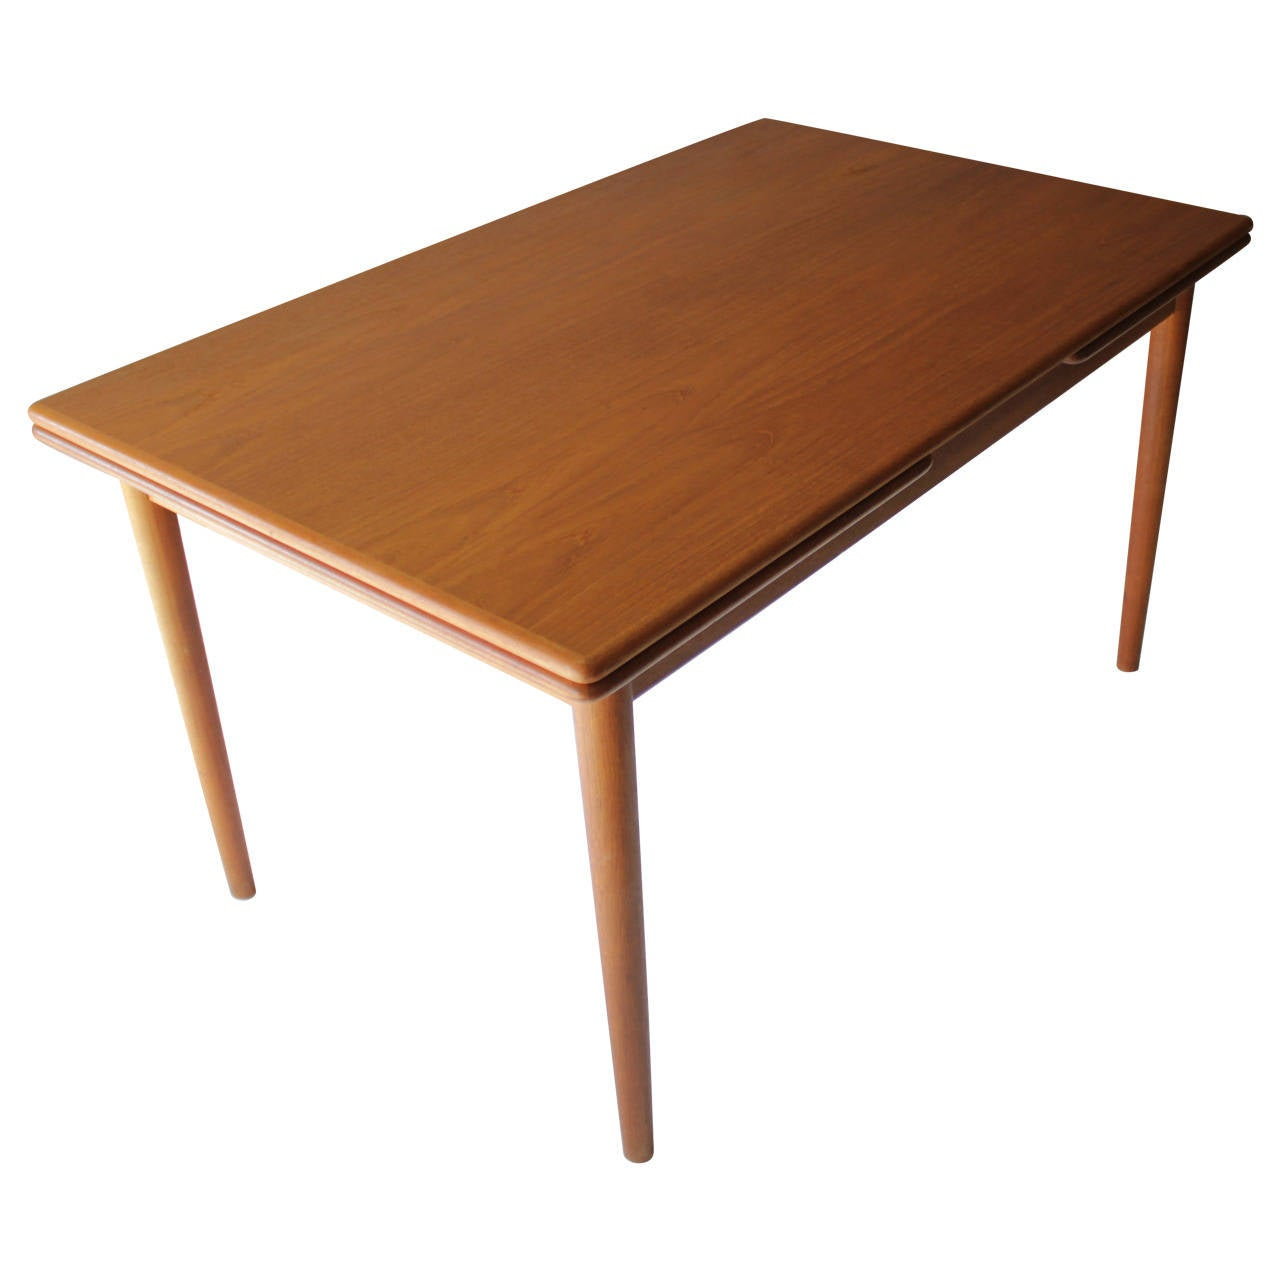 Danish teak dining room table with two leaves for sale at for Dining room table for 2